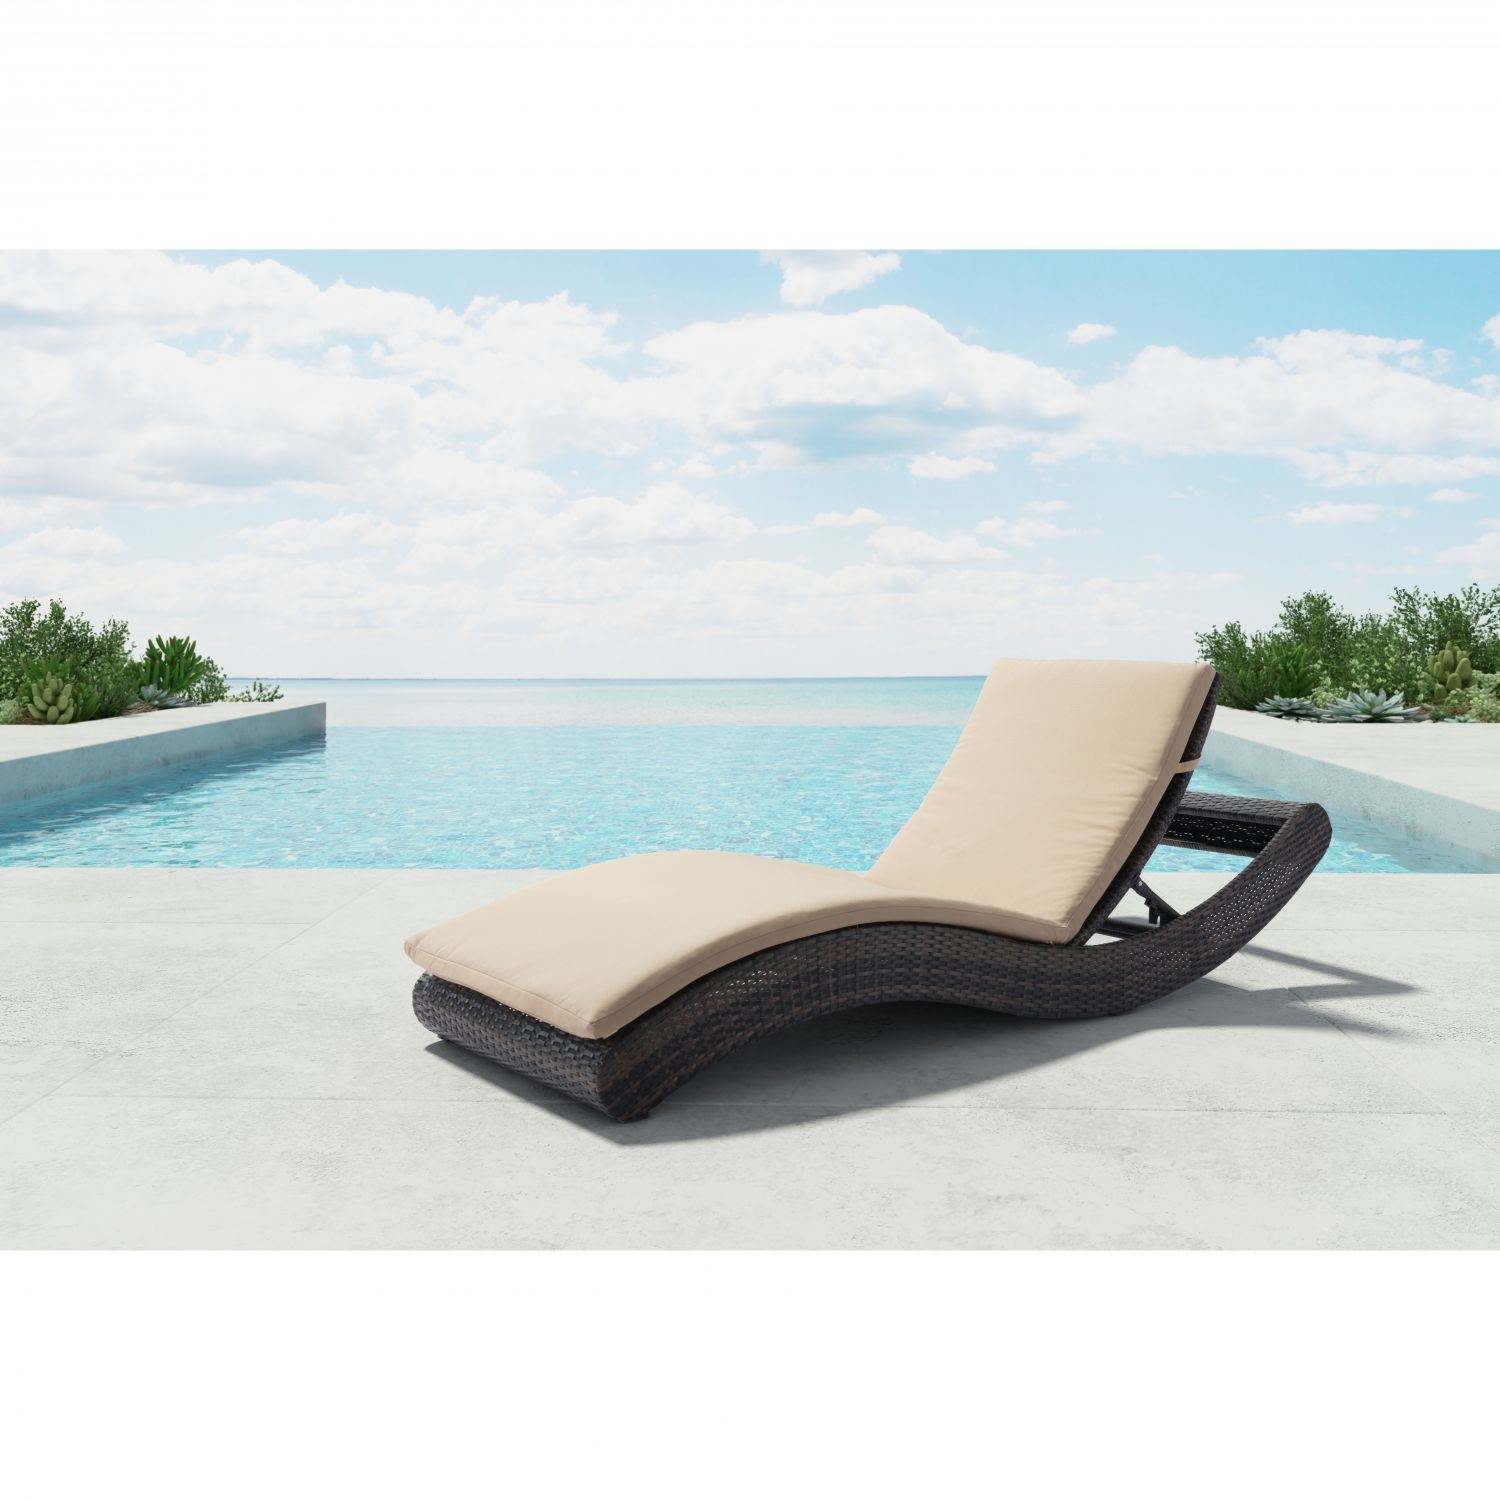 Pamelon beach chaise lounge brn beige 703840 zuo modern for Beach chaise lounger